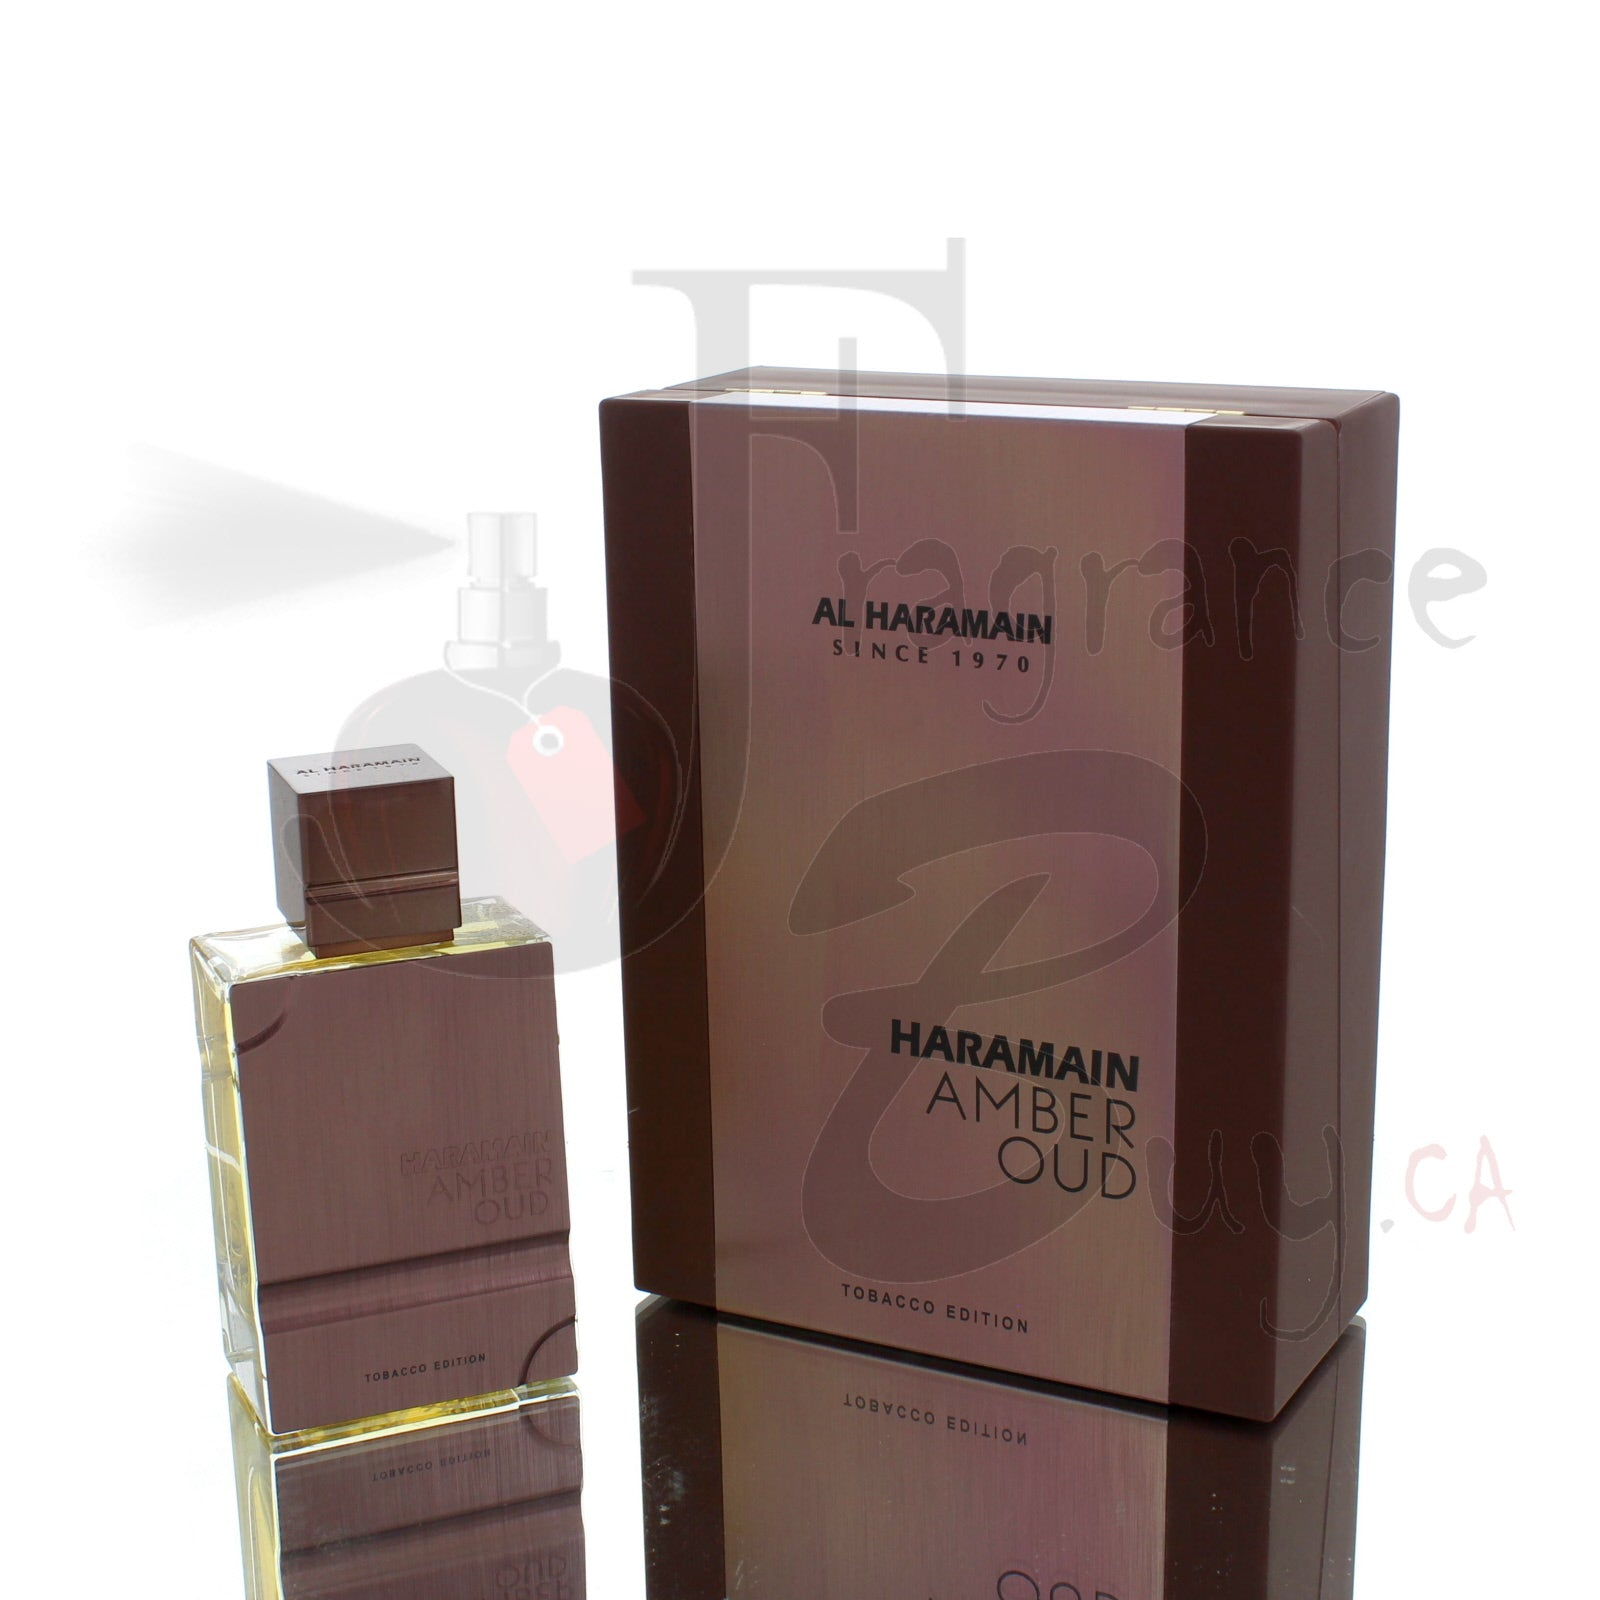 Al Haramain Amber Oud Tobacco Edition (2019) For Man